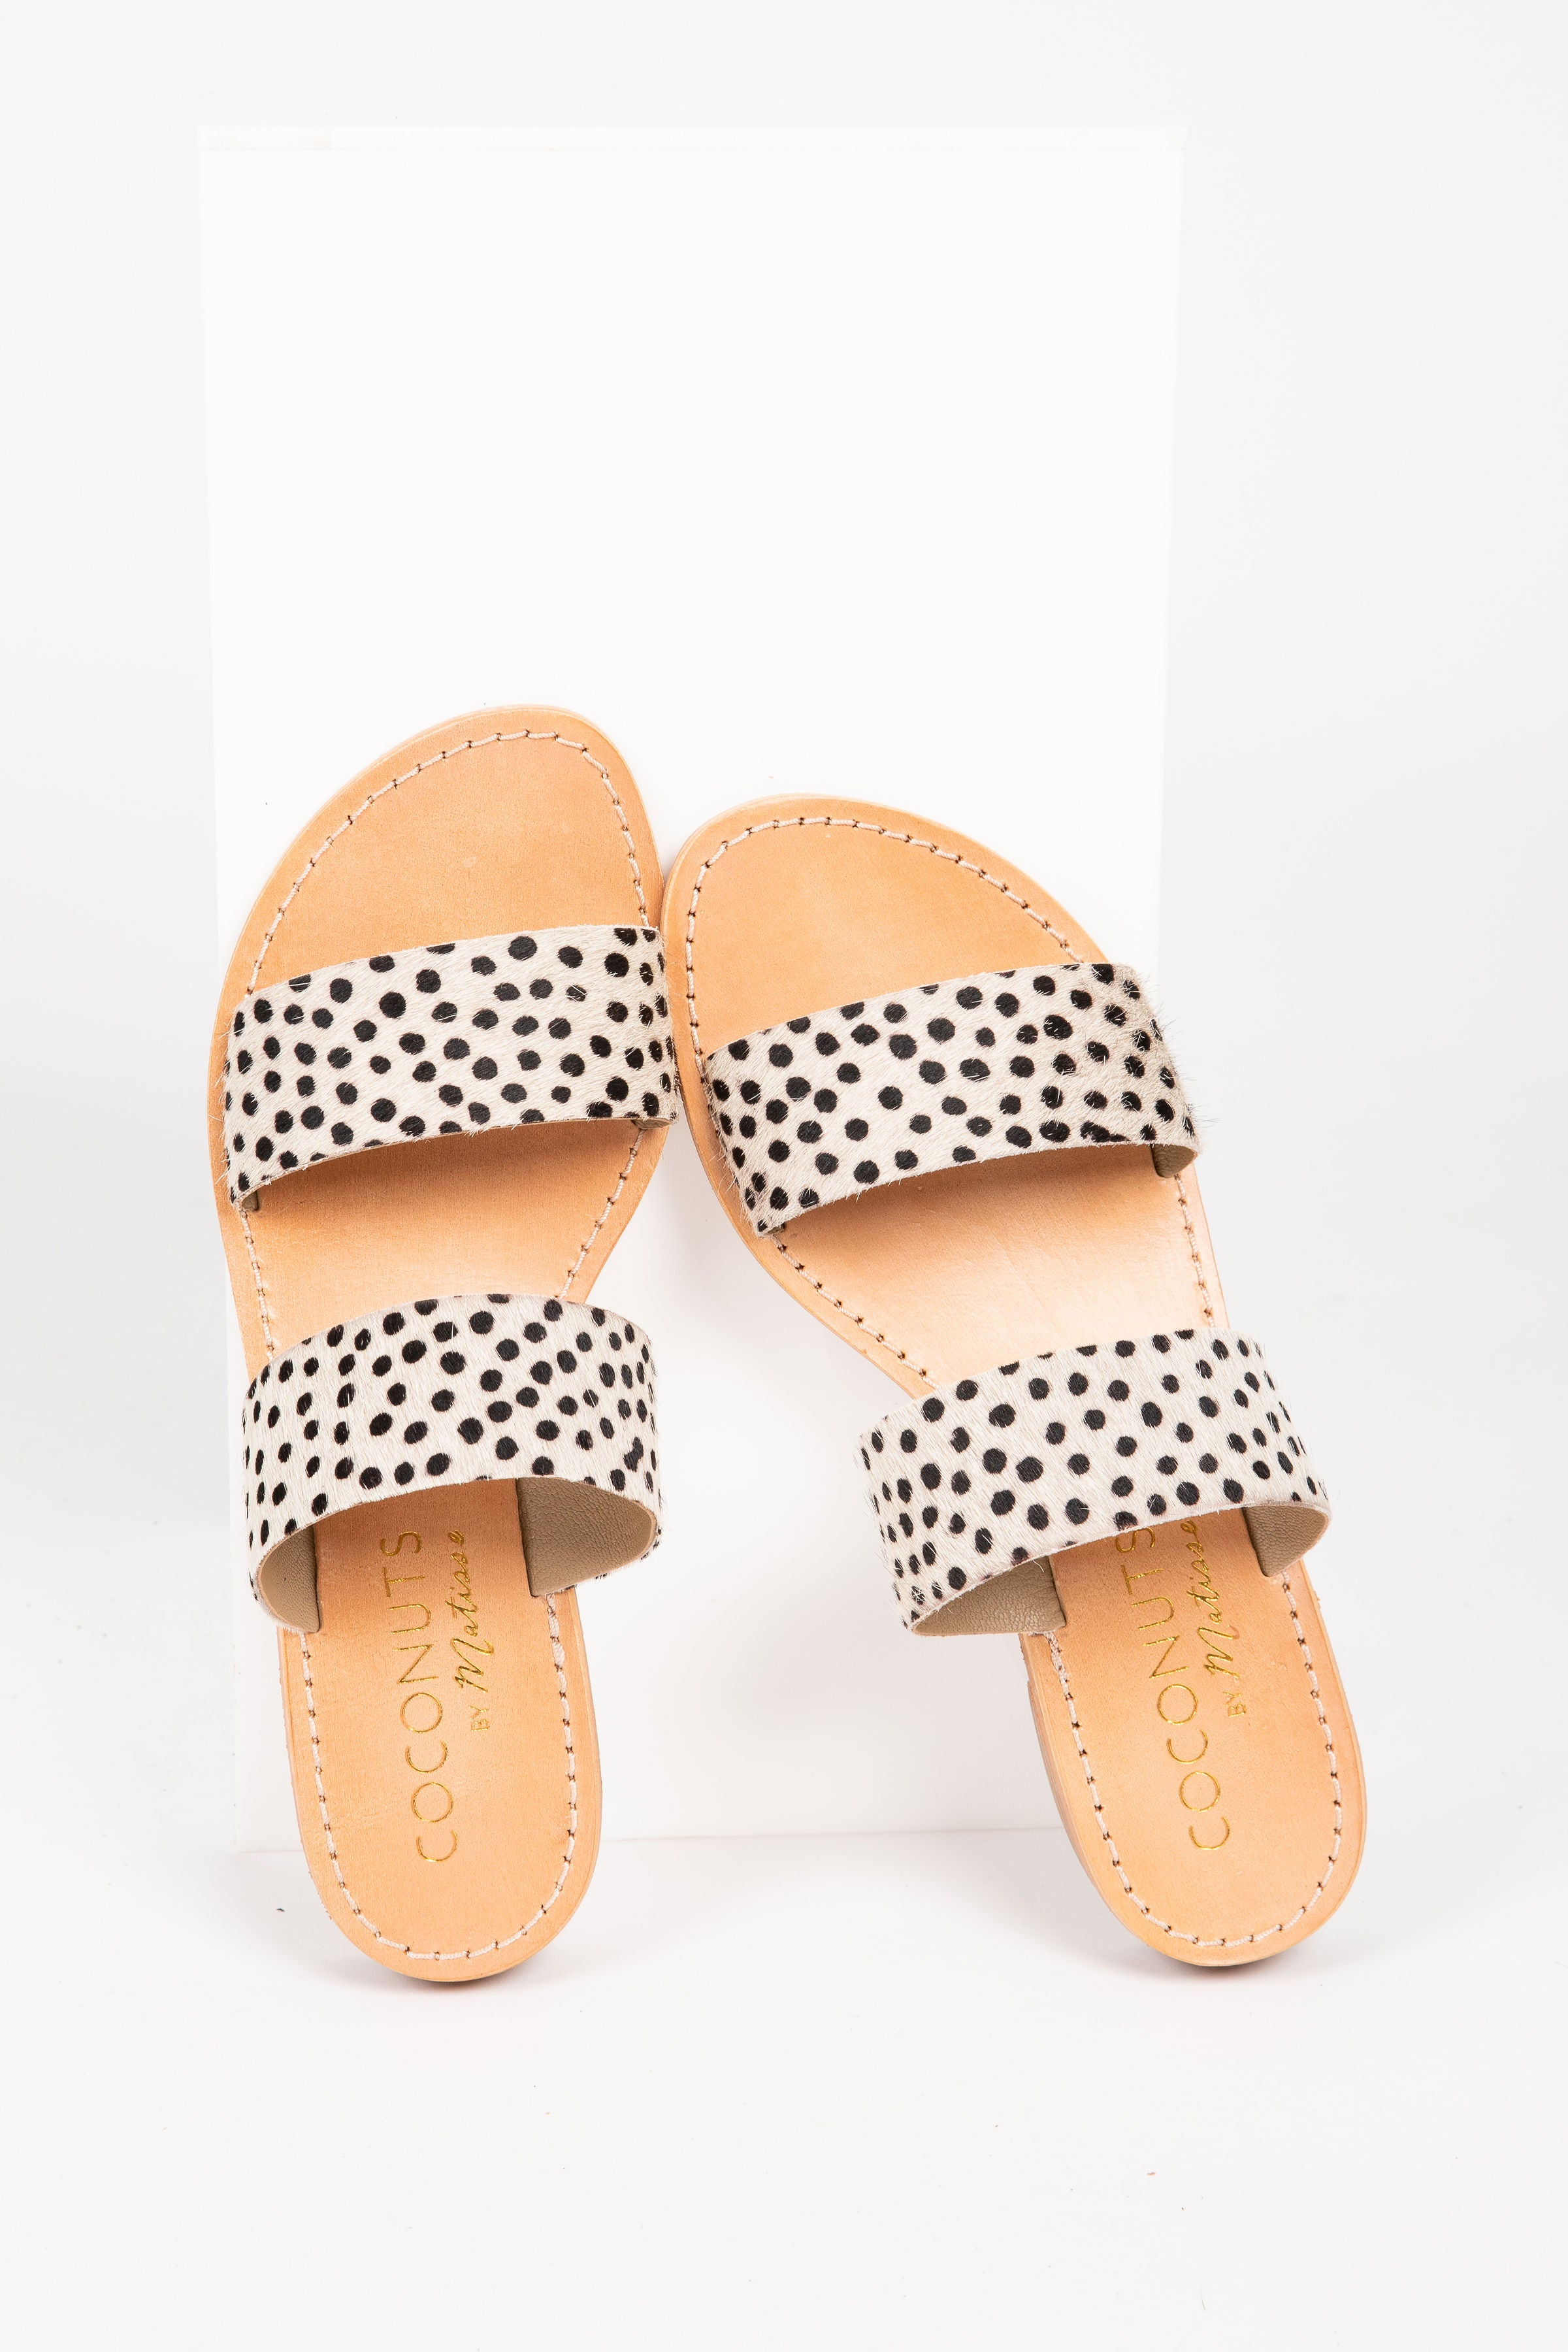 Coconuts by Matisse: Limelight Sandals in Leopard